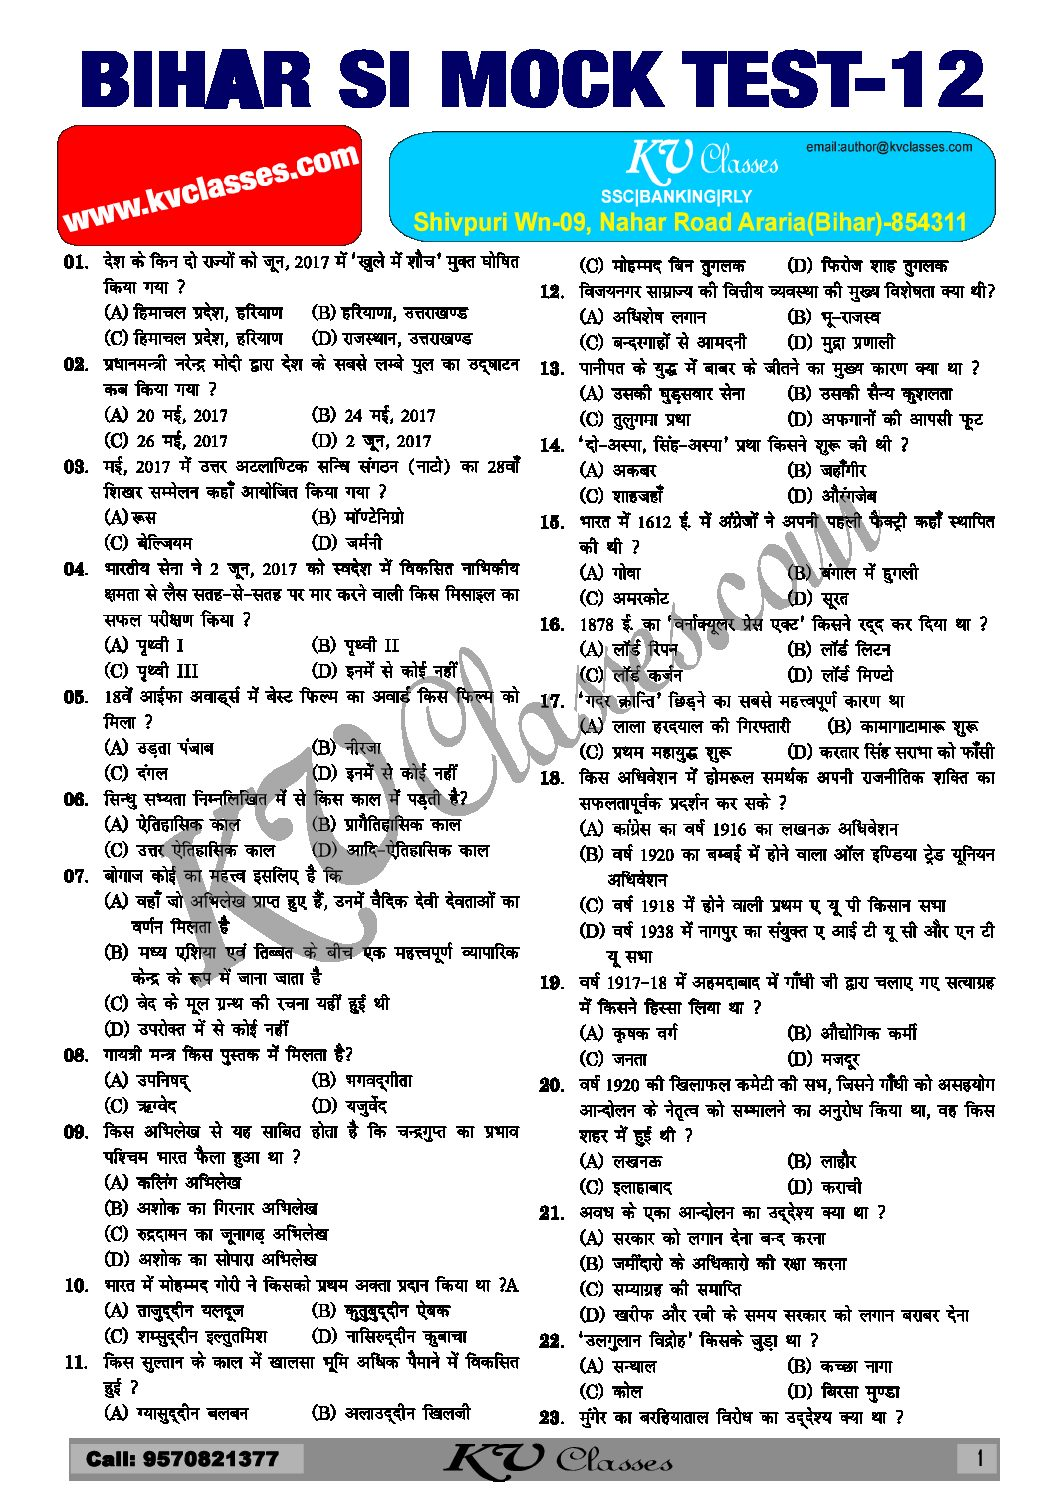 BIHAR SI (बिहार दरोगा ) Exam 2017 Mock Test Paper-12 PDF Download